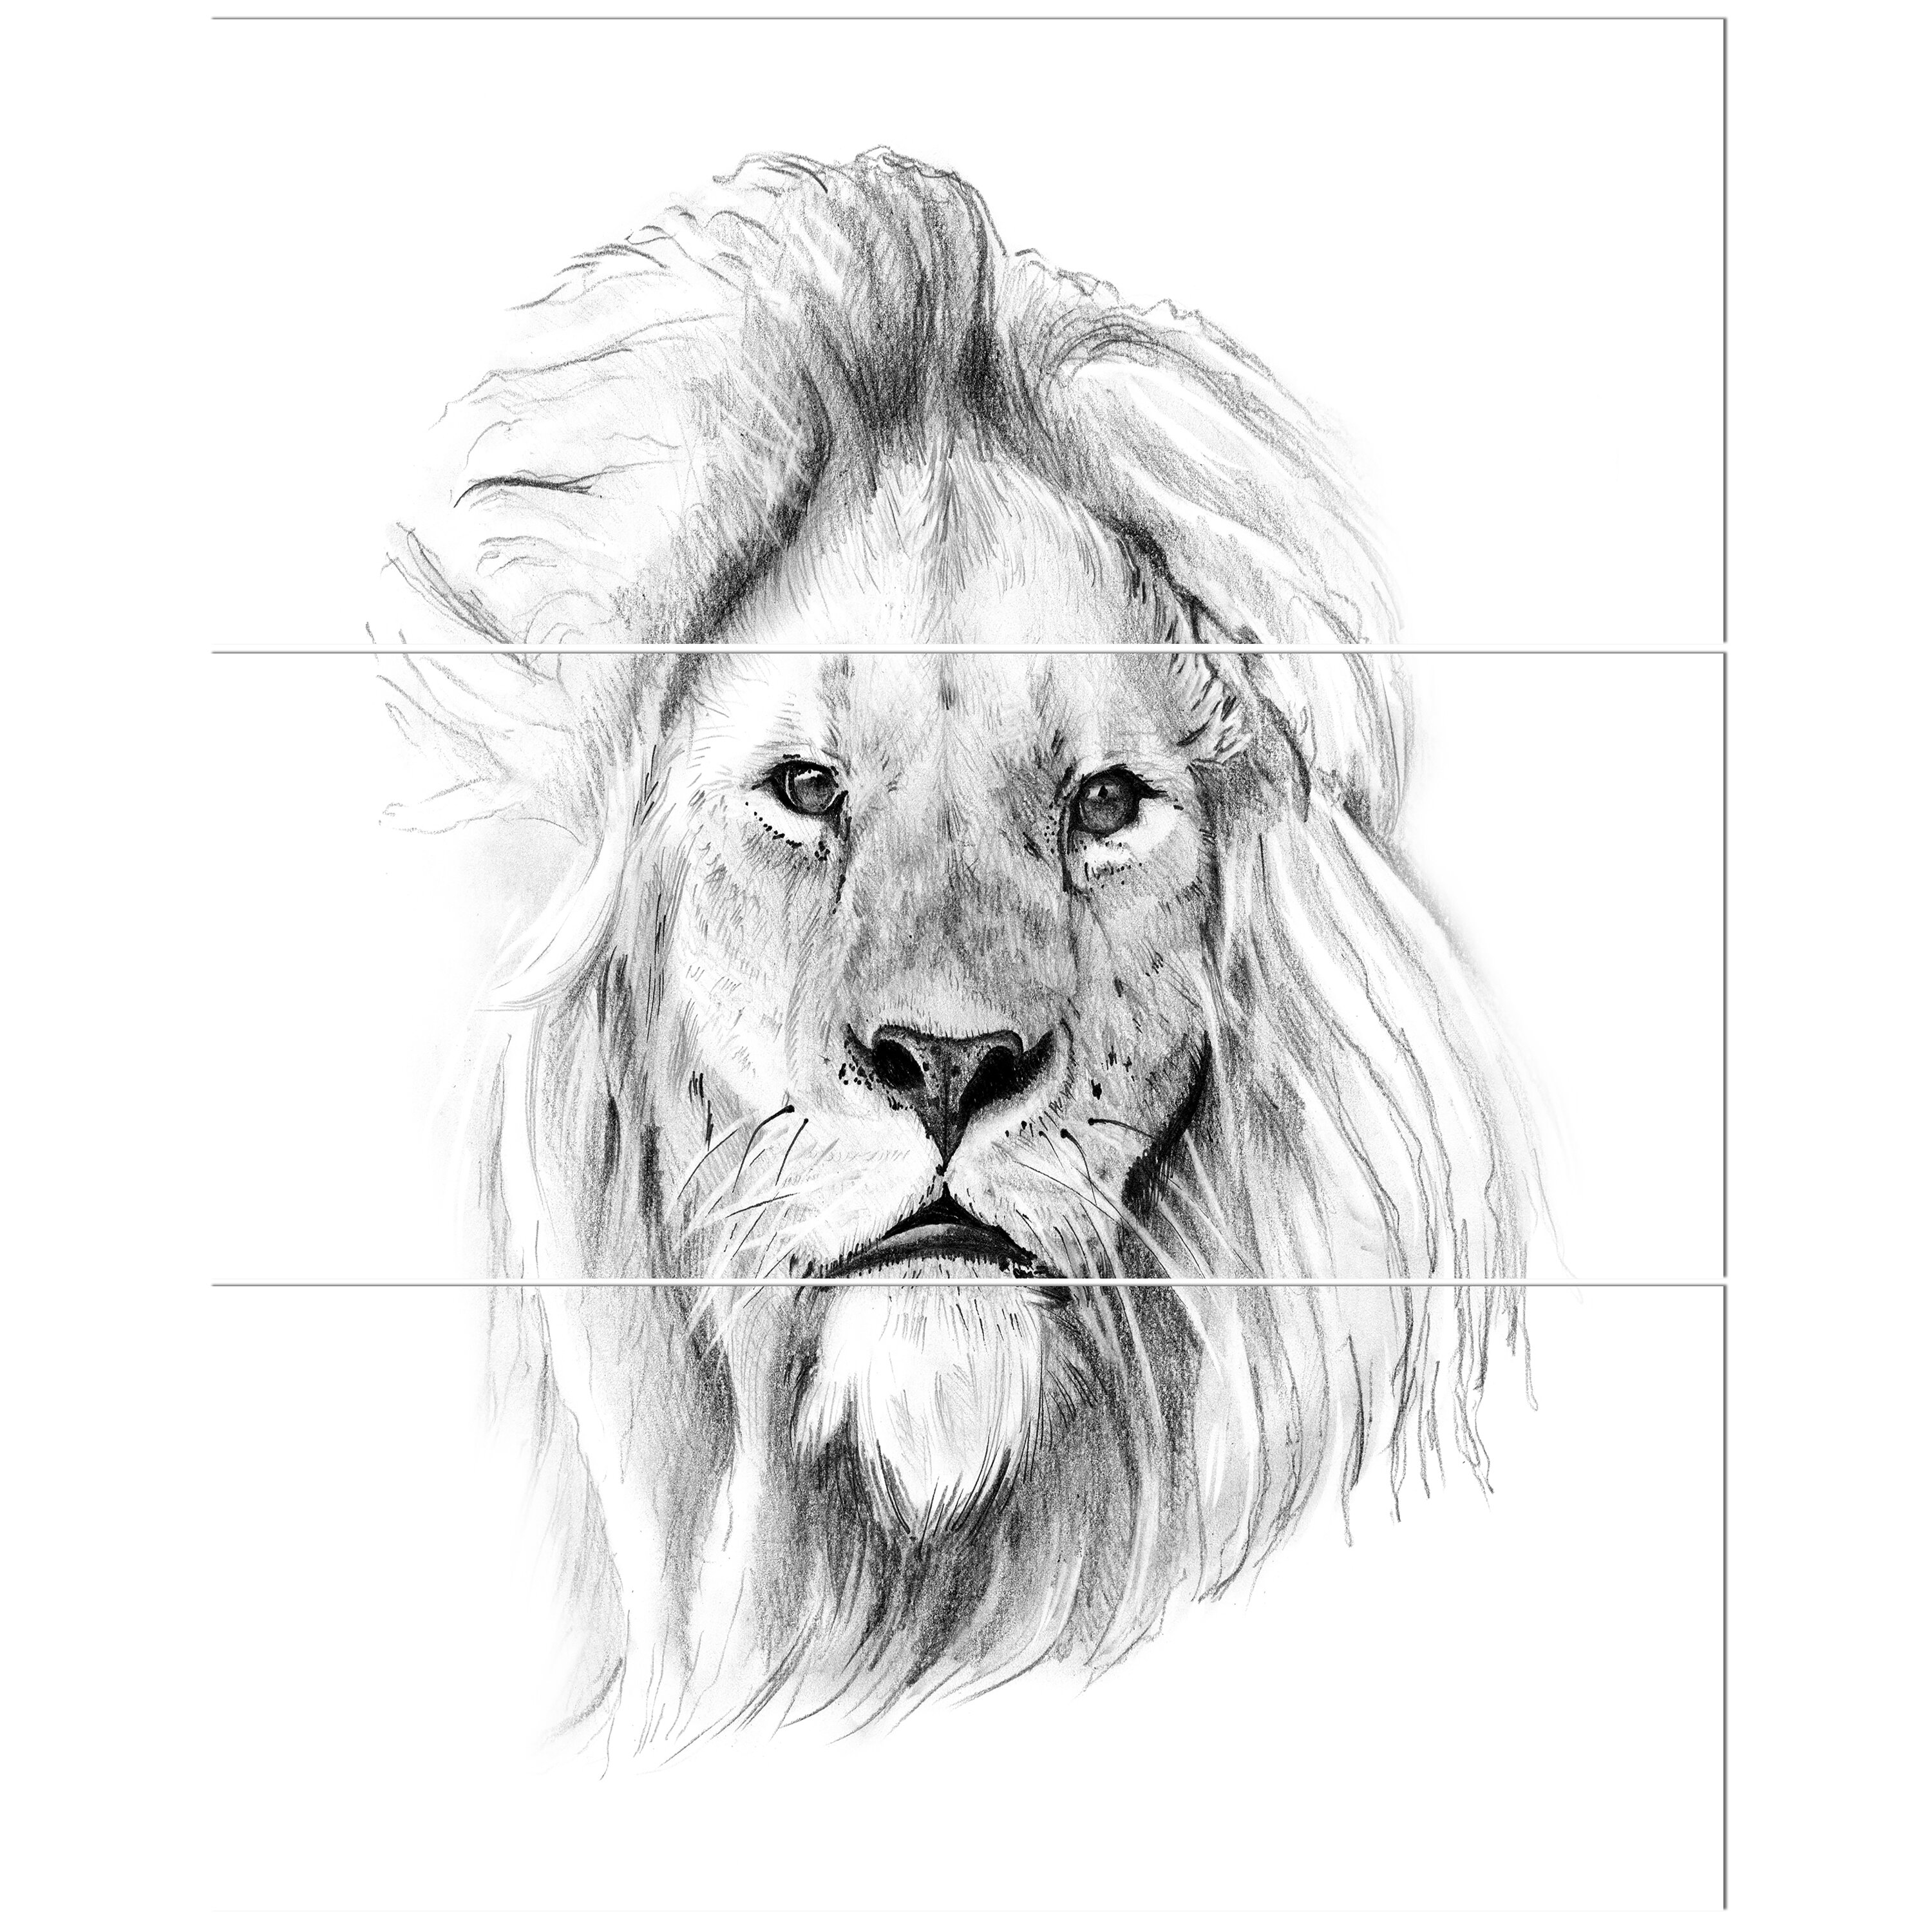 East urban home pencil lion sketch in black and white oil painting print multi piece image on wrapped canvas wayfair